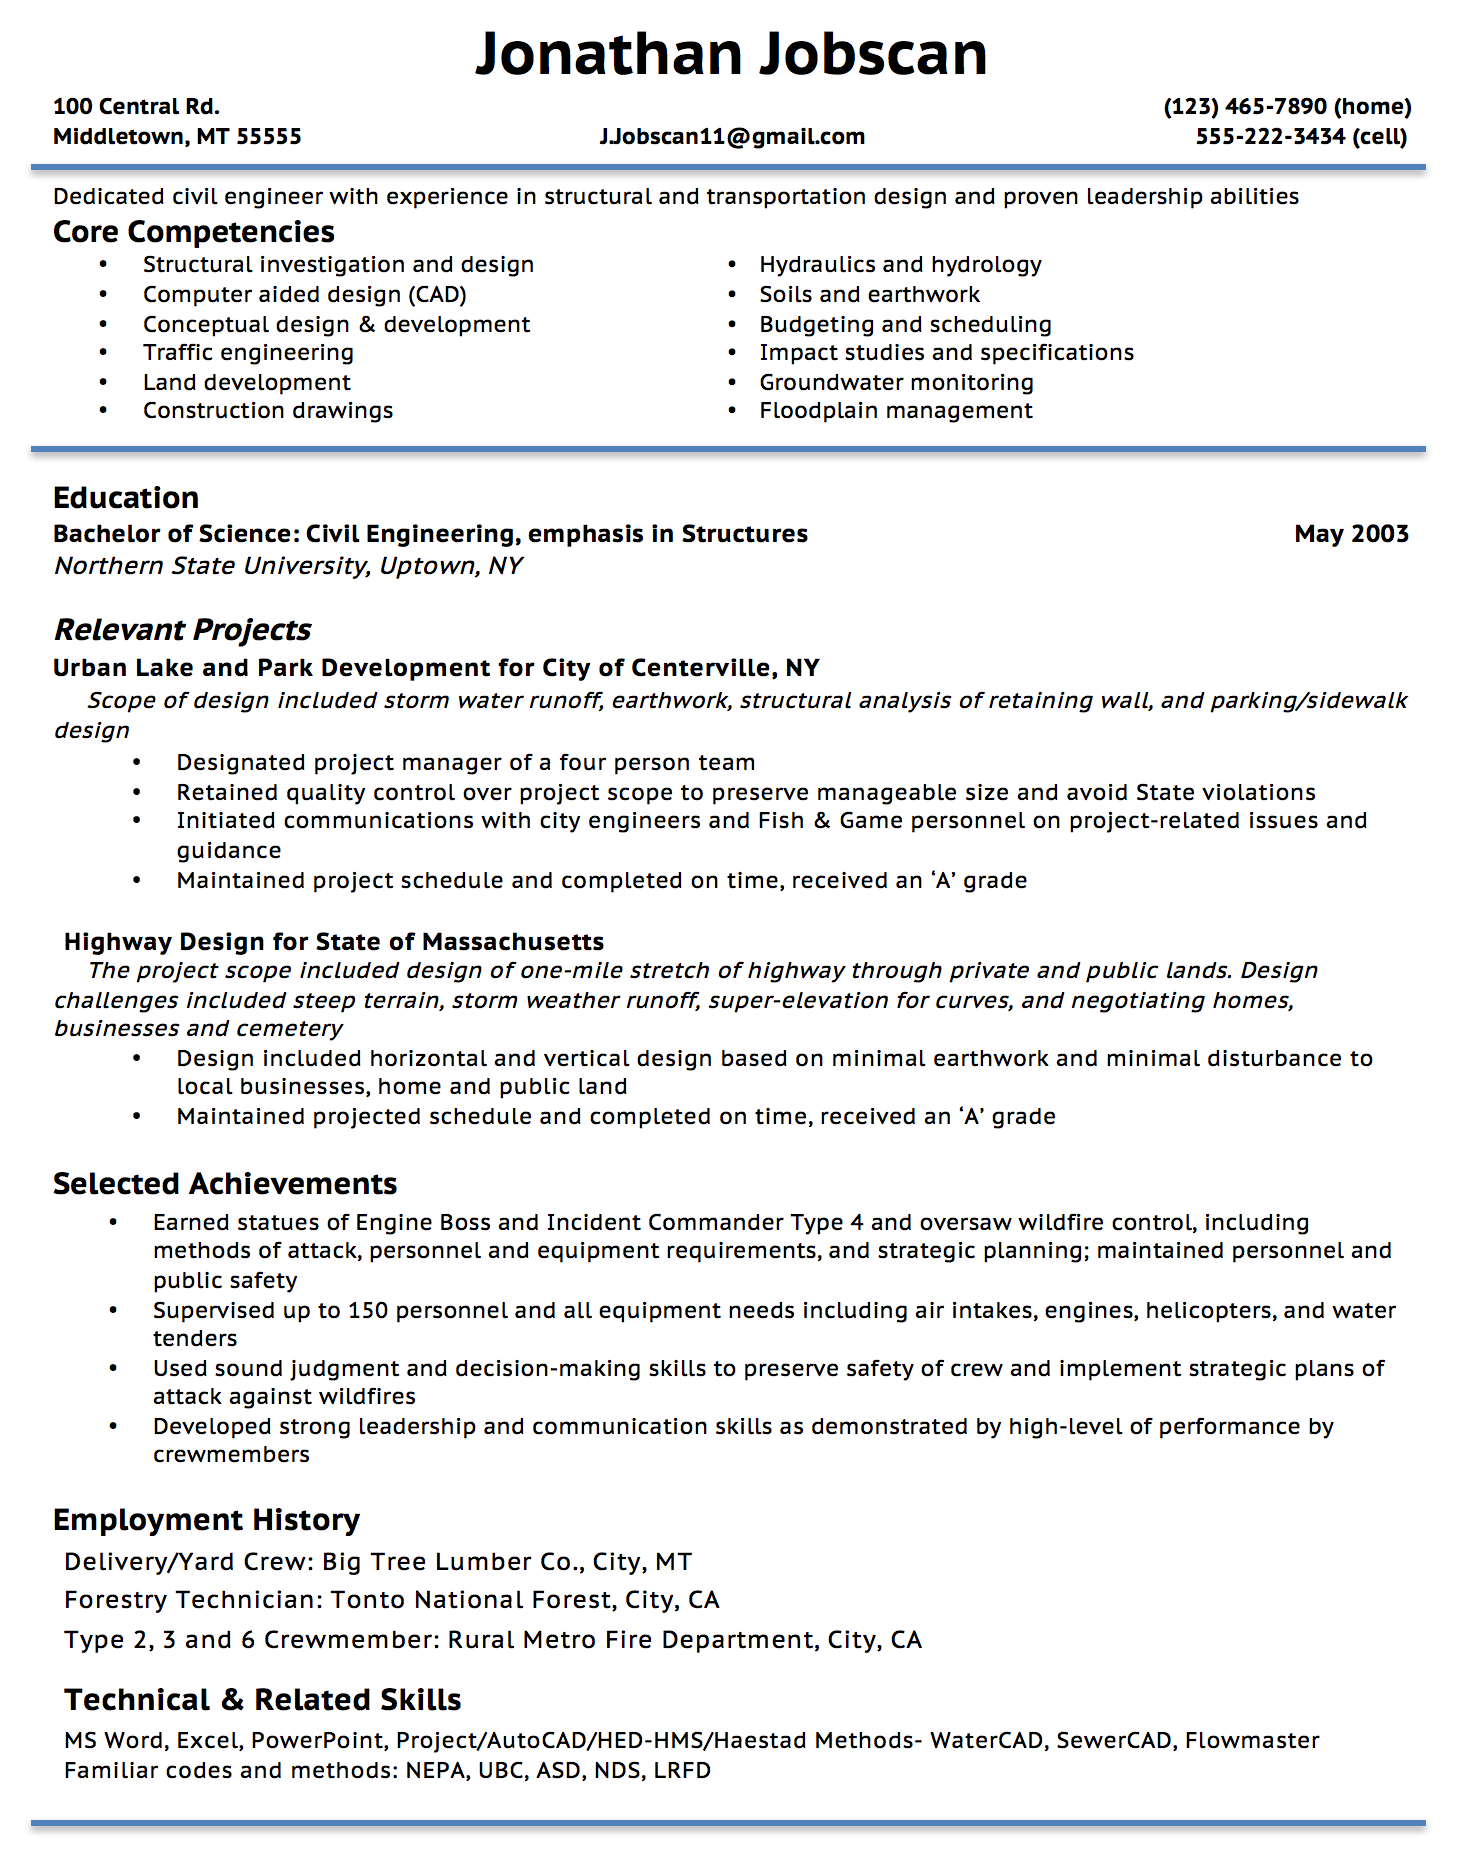 Opposenewapstandardsus  Picturesque Resume Writing Guide  Jobscan With Extraordinary Example Of A Functional Resume Format With Archaic Free Military Resume Builder Also Achievements To Put On A Resume In Addition Sql Server Resume And Security Resumes As Well As Resumes By Marissa Additionally Babysitting Resumes From Jobscanco With Opposenewapstandardsus  Extraordinary Resume Writing Guide  Jobscan With Archaic Example Of A Functional Resume Format And Picturesque Free Military Resume Builder Also Achievements To Put On A Resume In Addition Sql Server Resume From Jobscanco